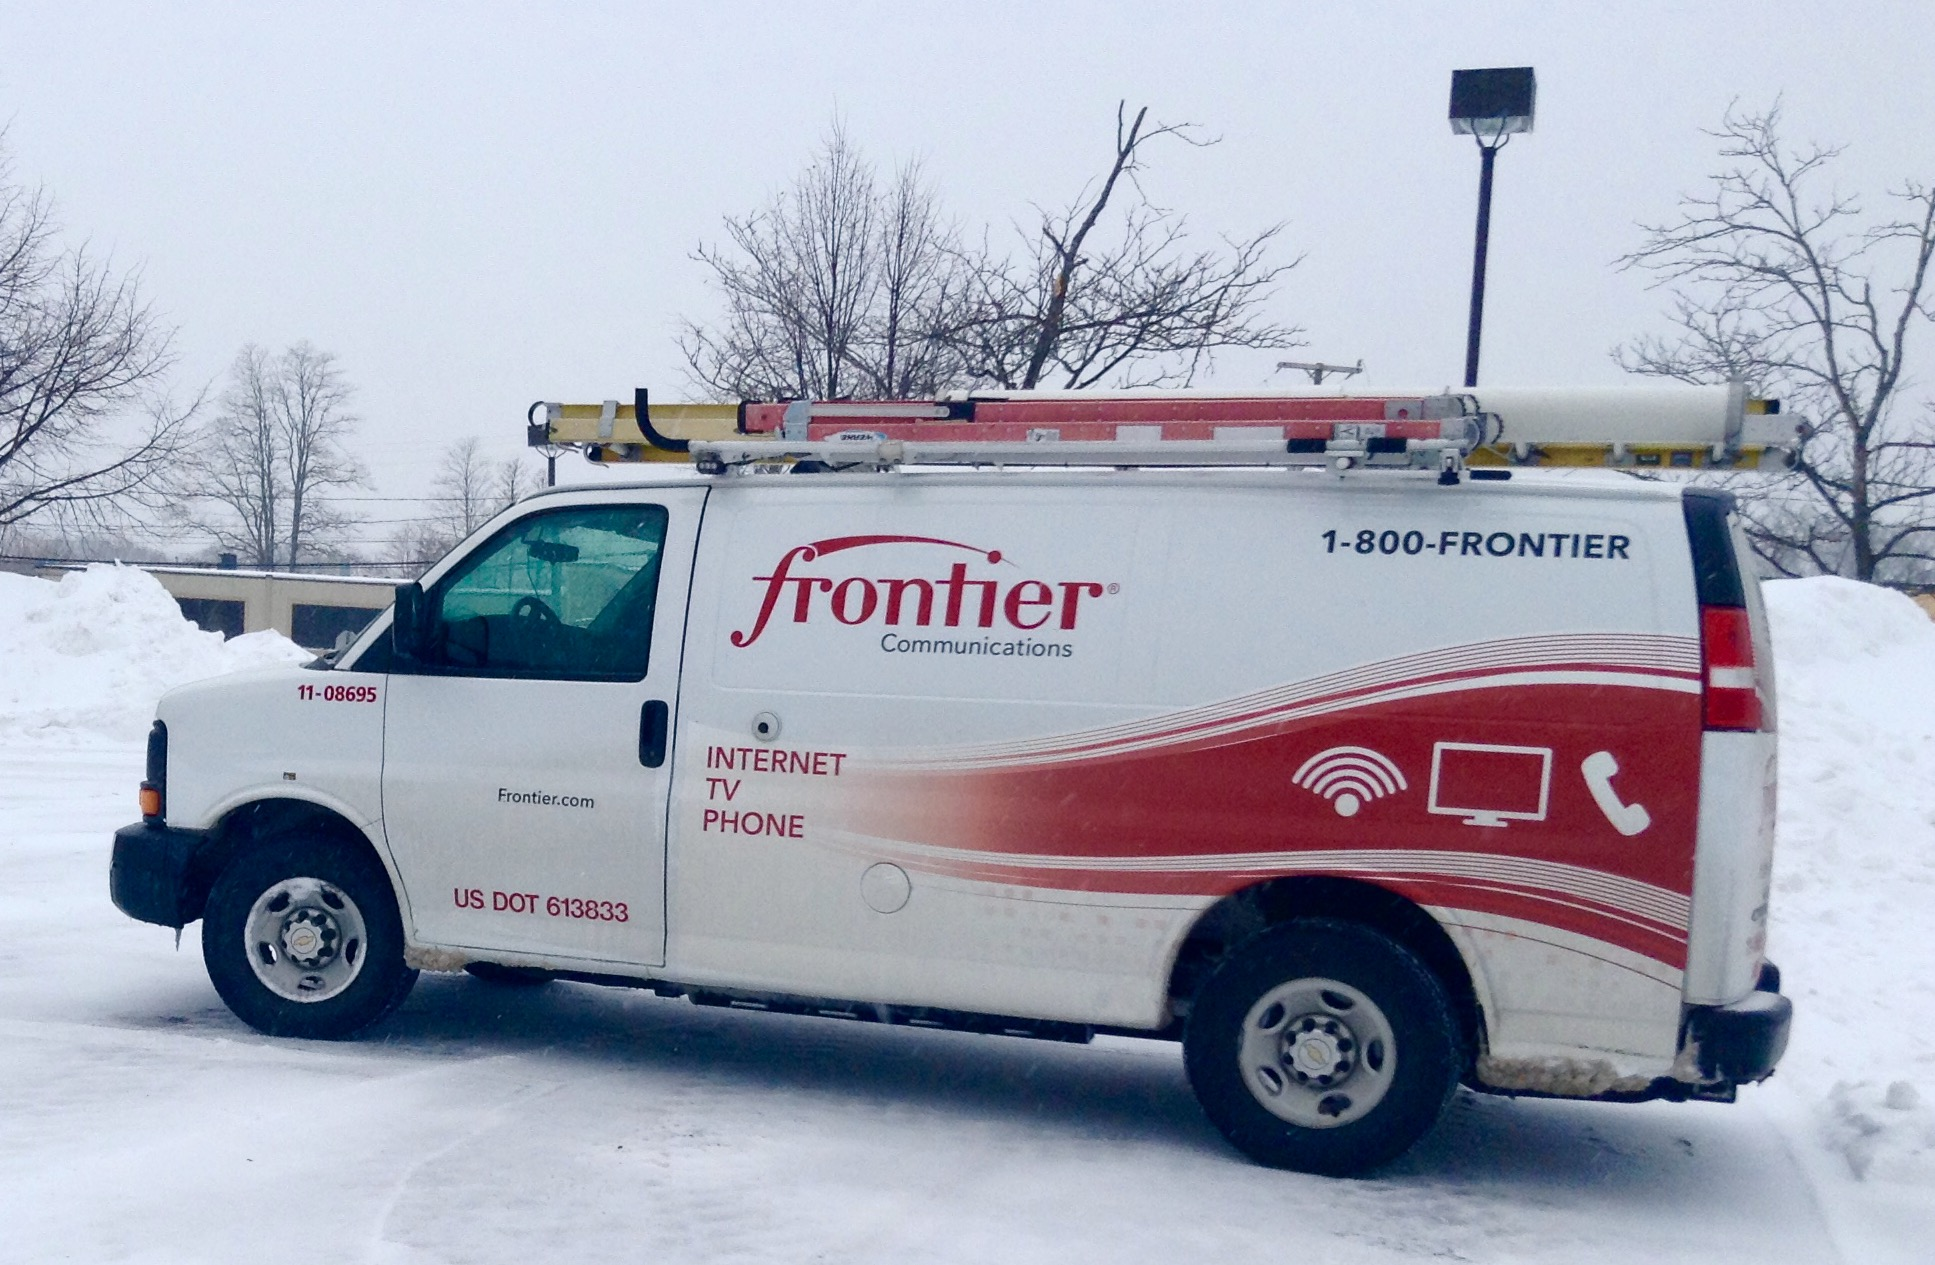 A Frontier communications van